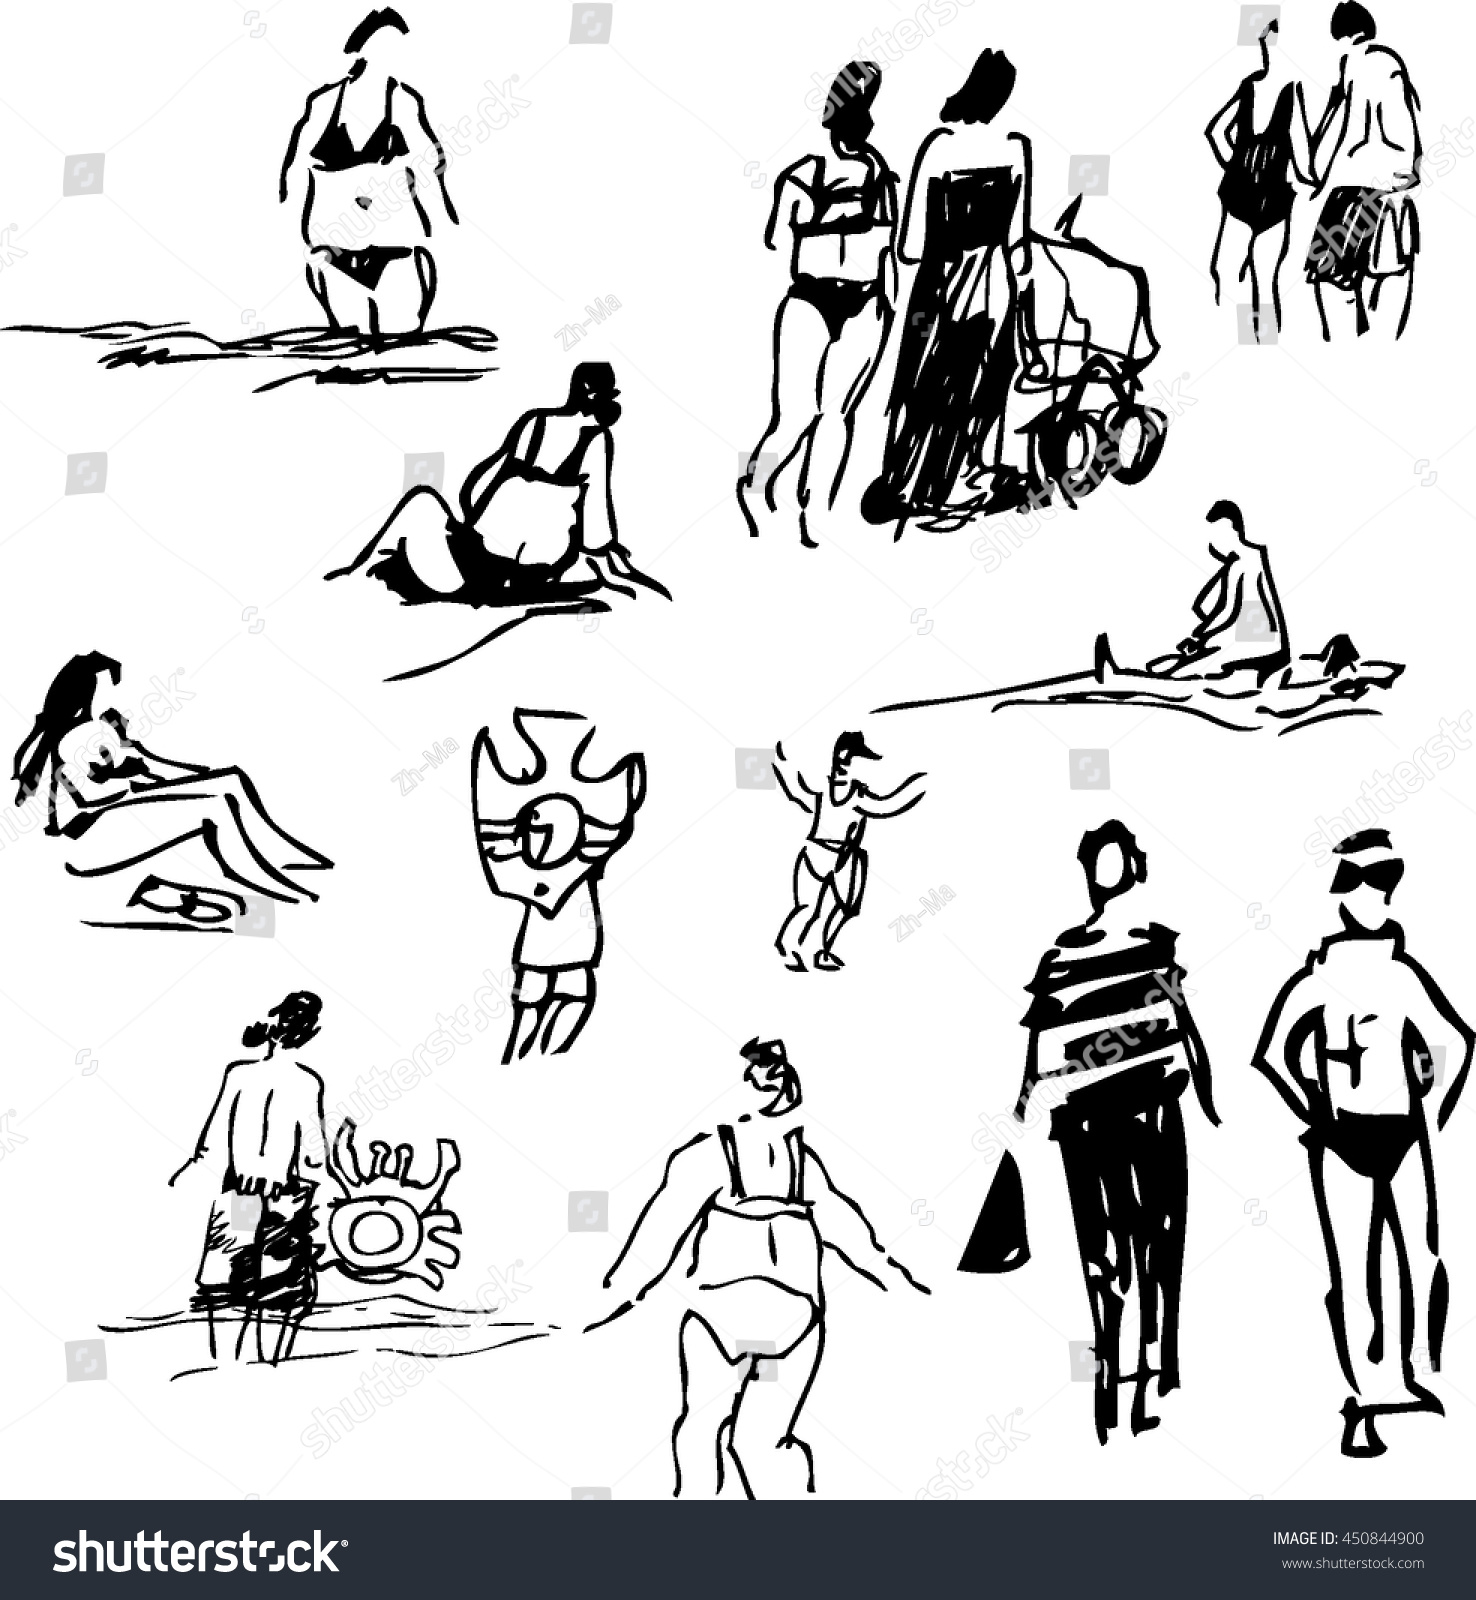 People On The Beach Vector Hand Drawn Black And White Illustration Isolated Sketches